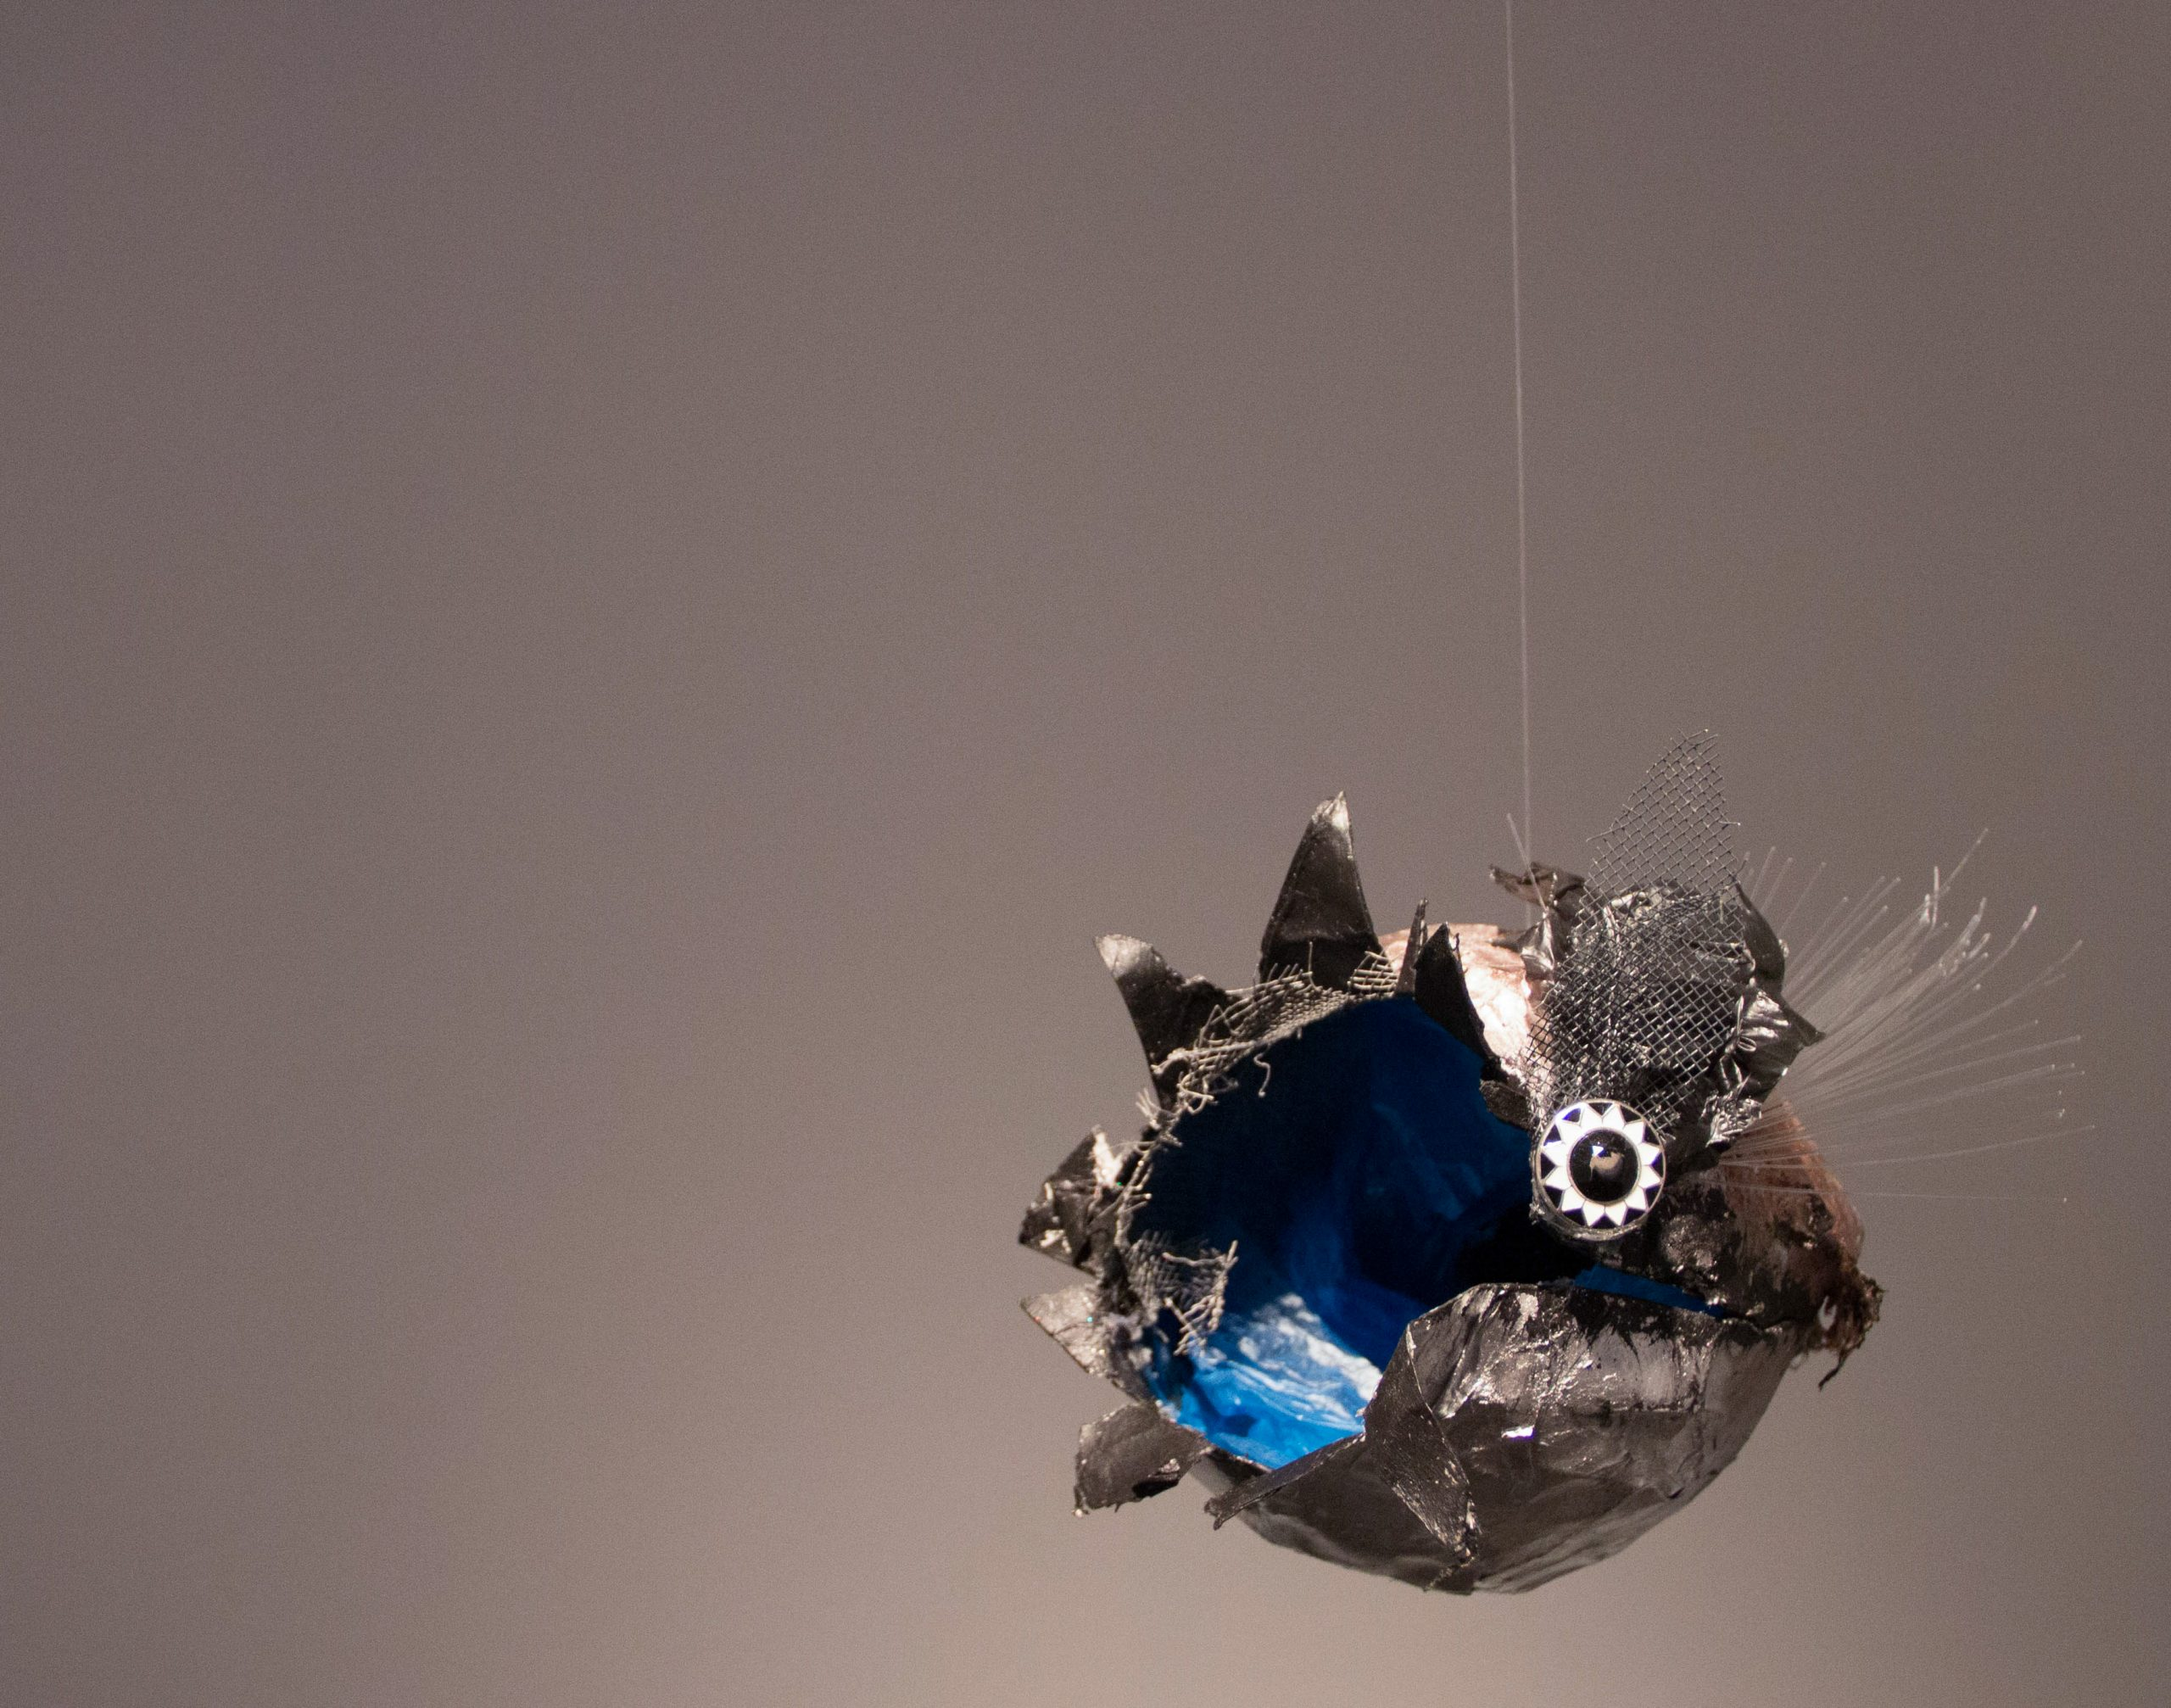 "thingamabob #2, 2014. Paper, plastic bags, wire, button, monofilament, wire mesh, spray paint, acrylic paint. Approx. 7"" x 8"" x 6."